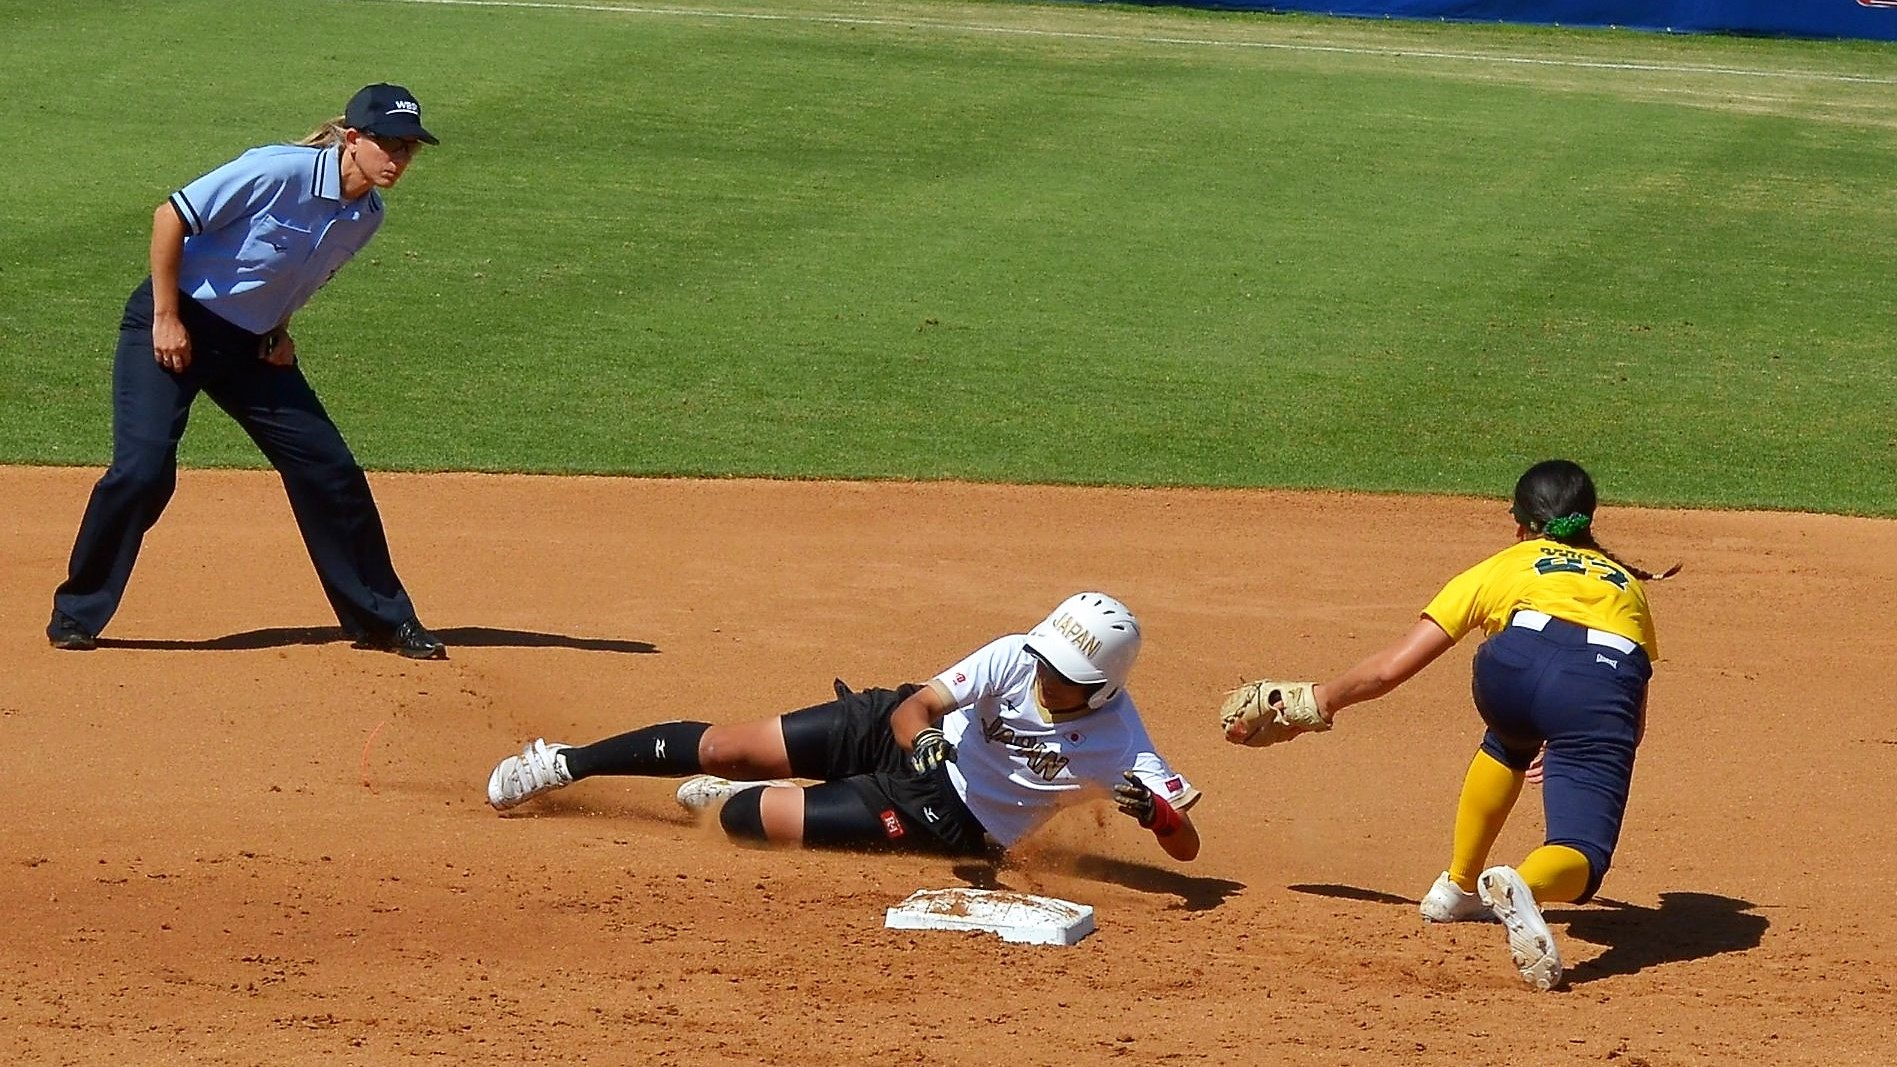 Chiharu Shiharashi got the first in and went on to score three runs